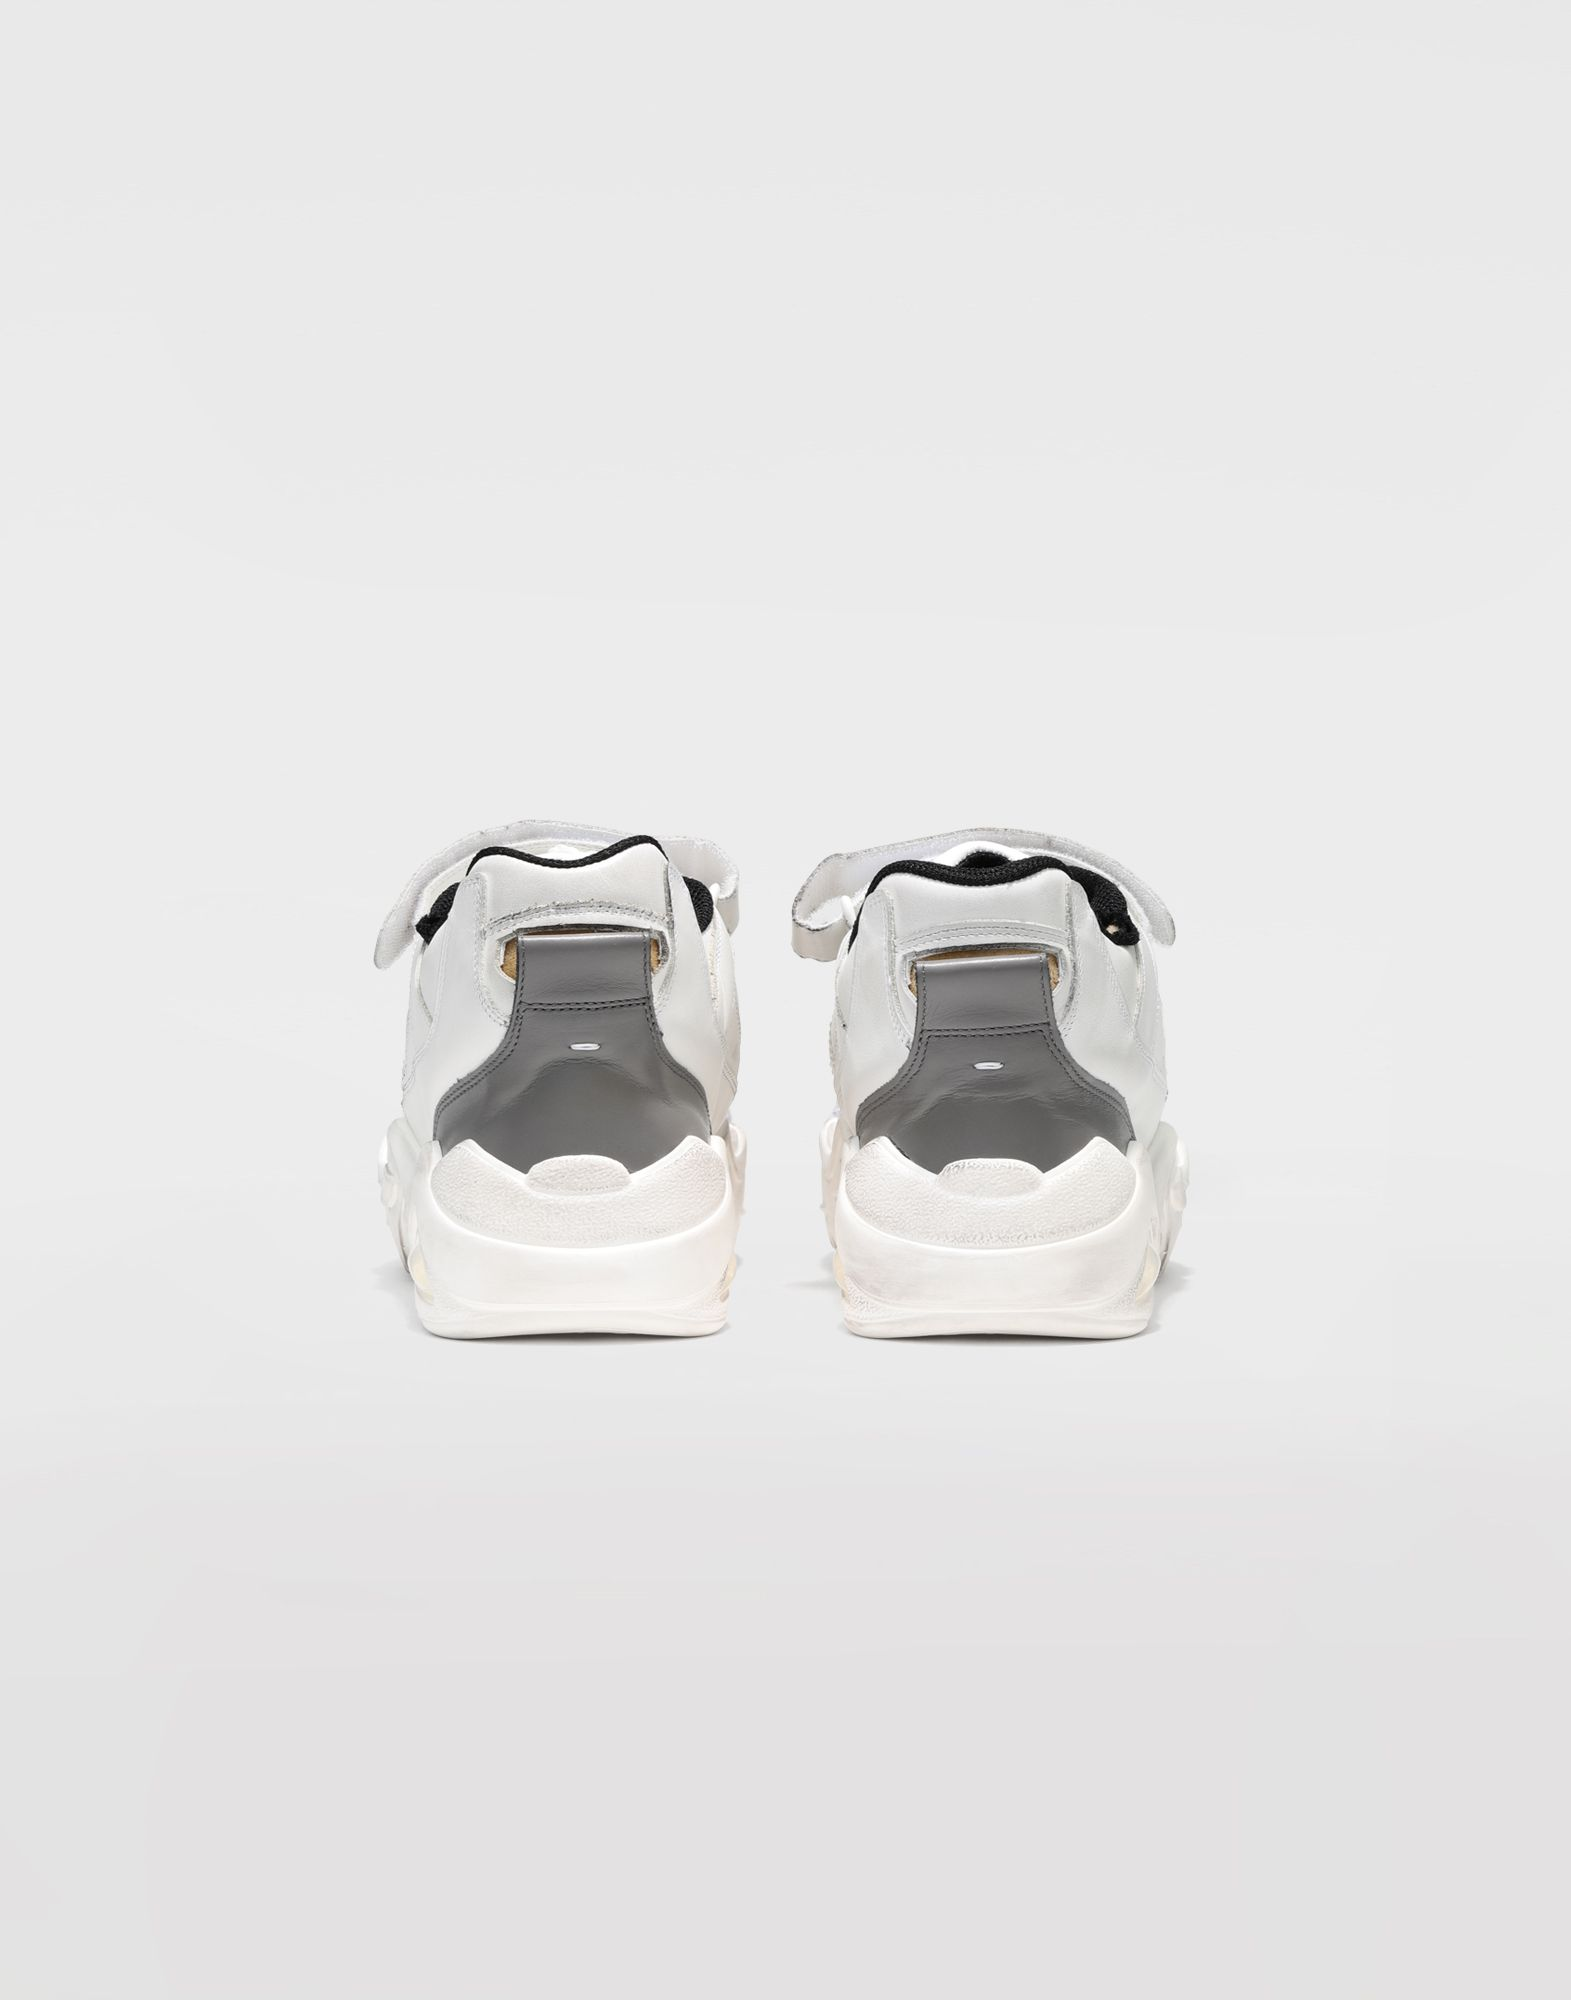 MAISON MARGIELA Retro Fit sneakers Sneakers Man e